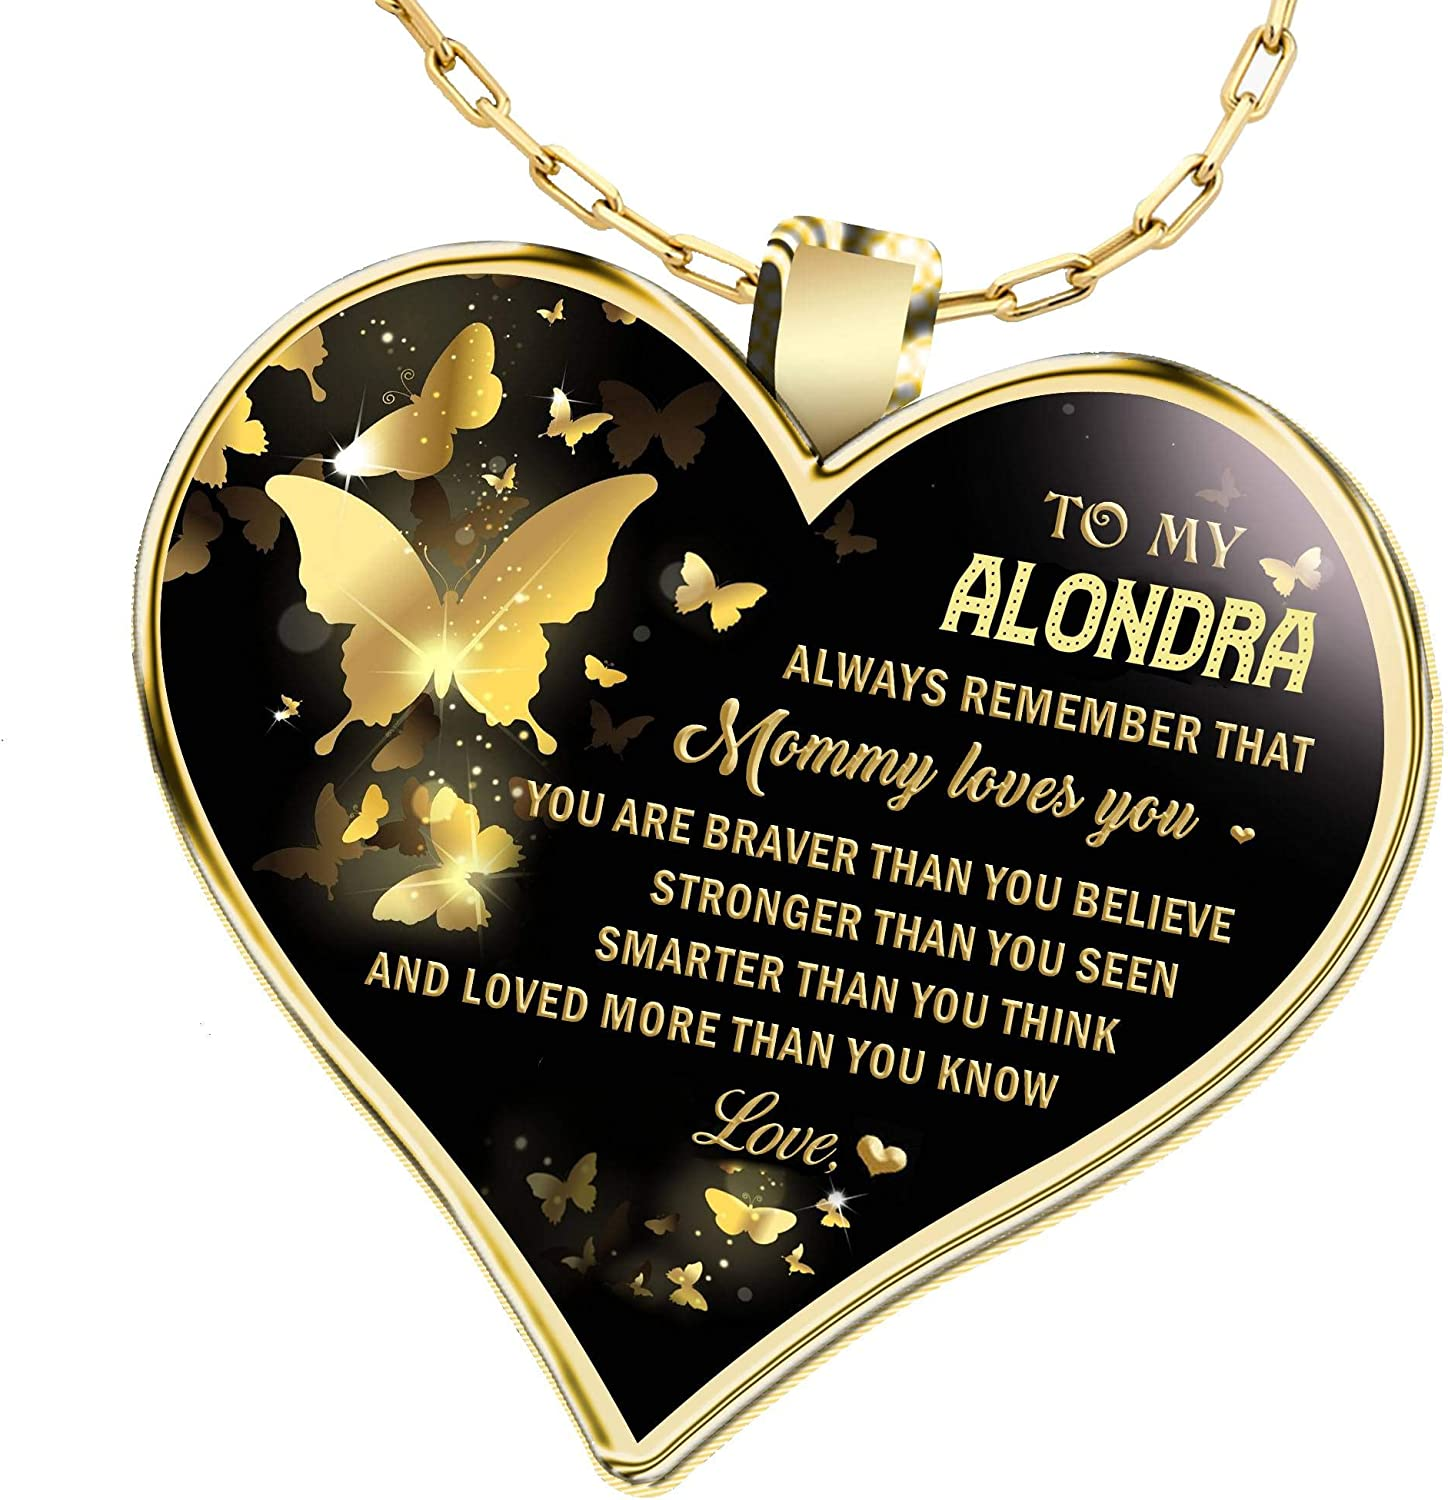 Gifts Fixed price for sale Necklace Name Popular Wife to My That Alondra Remember Always